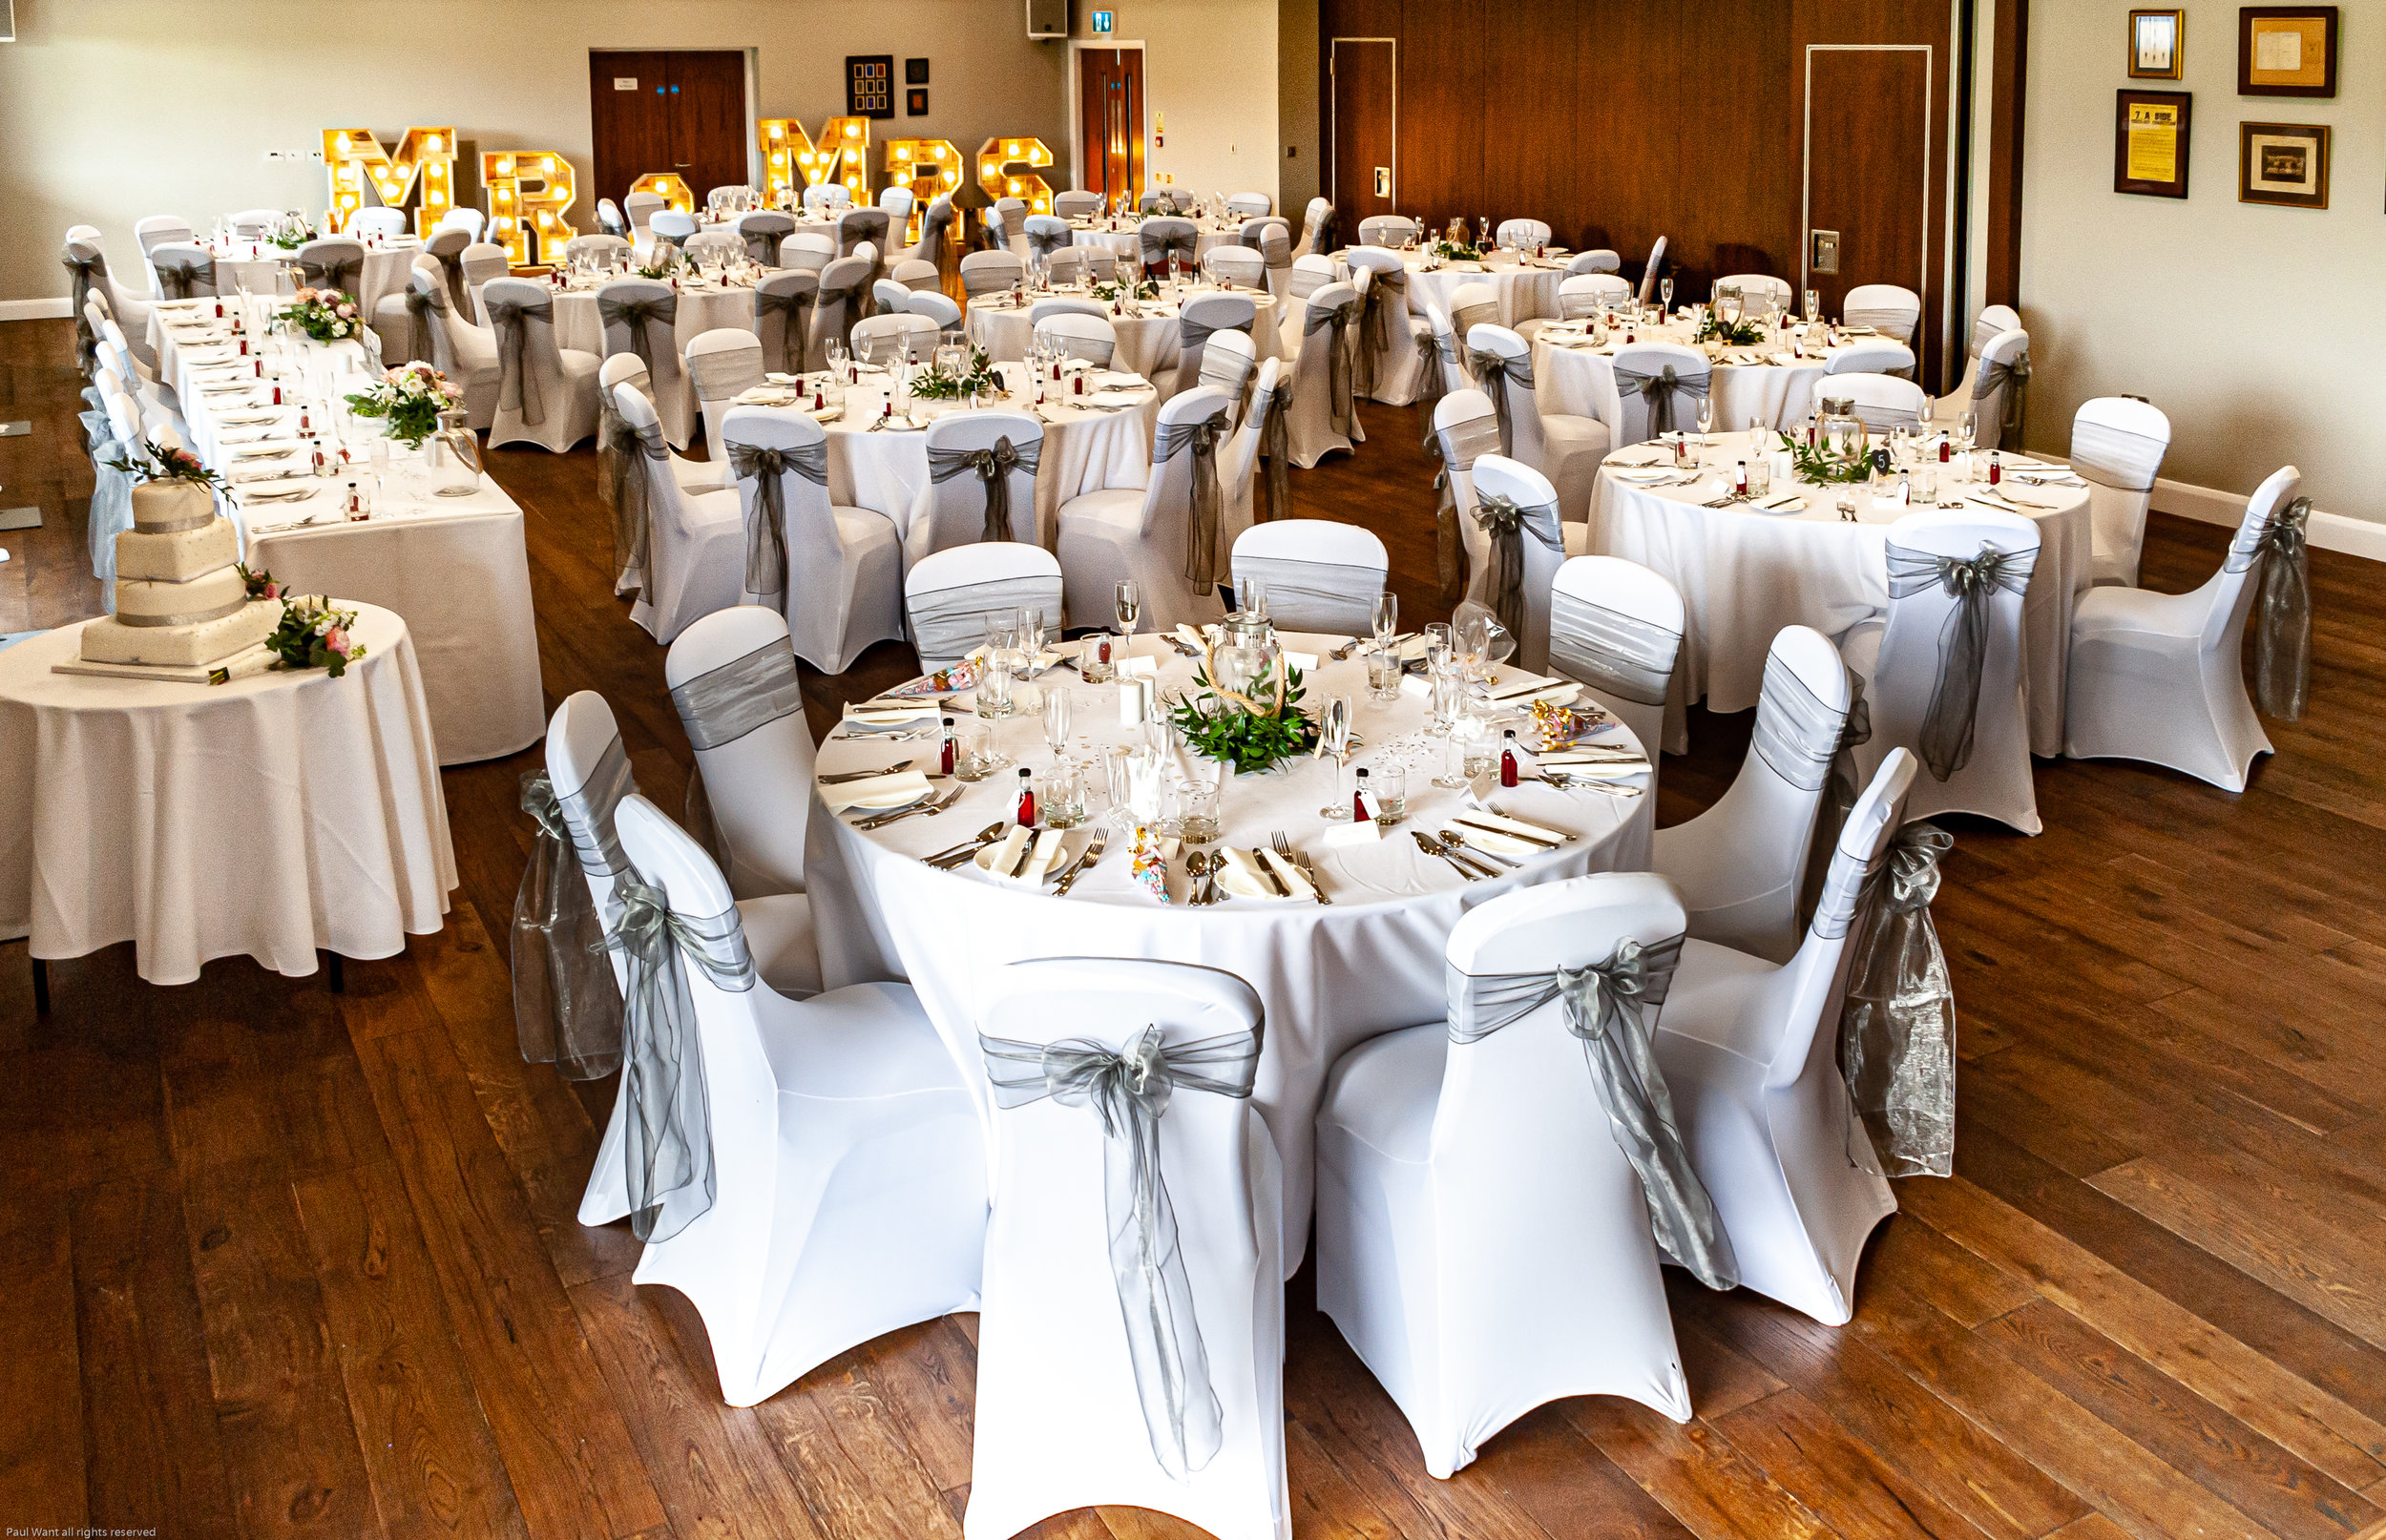 The Kentdale Suite - Our 200sqm Kentdale Suite can seat up to 200 for dining in a range of formations, with access to our luxurious bar, and fully equipped for live bands and discos.